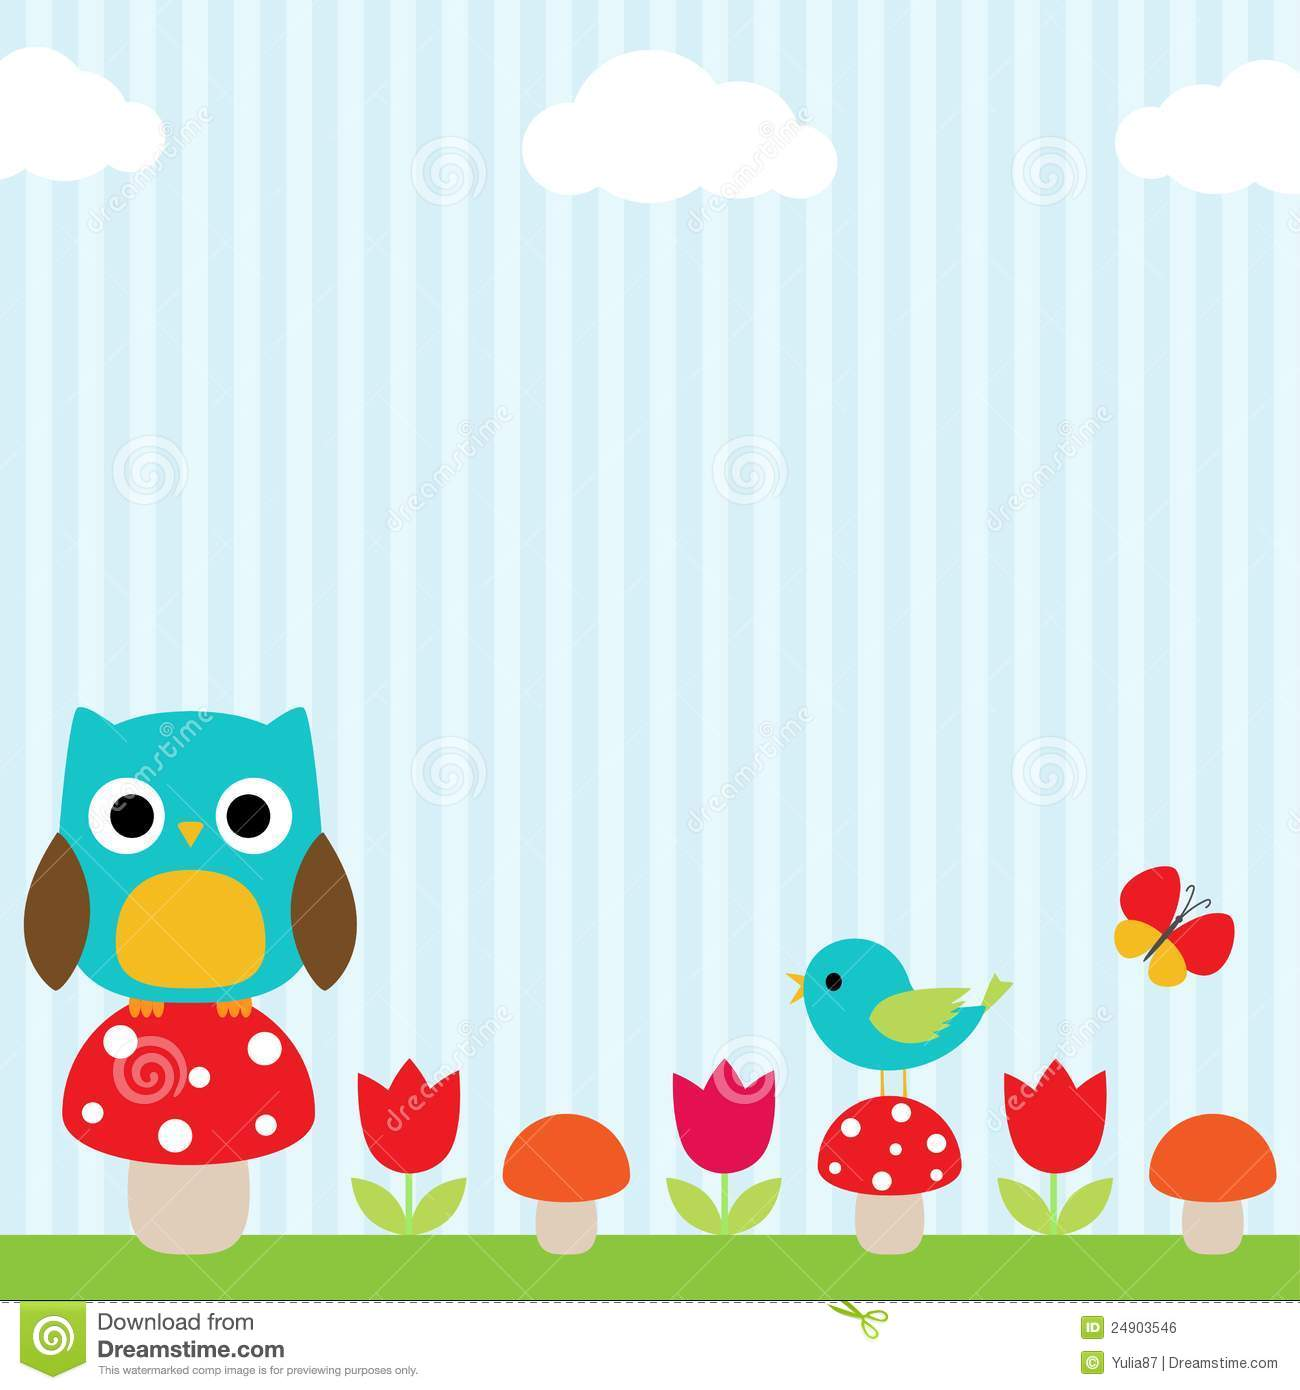 Owl Background Royalty Free Stock Image   Image  24903546